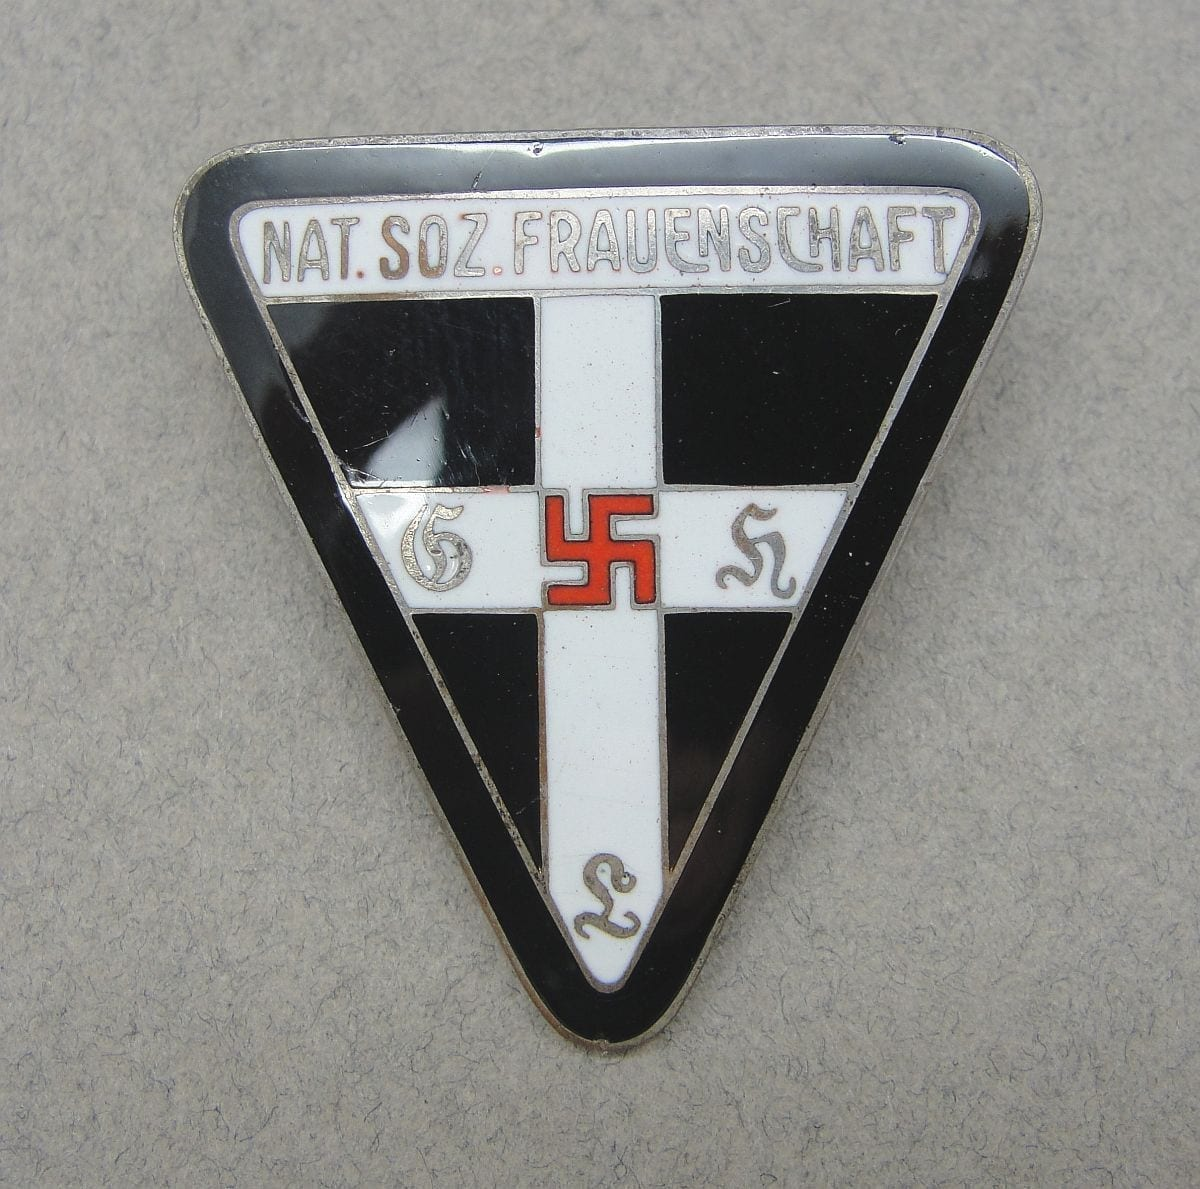 Nationalsozialistische Frauenschaft Female Organization Badge, Kreisleitung Level